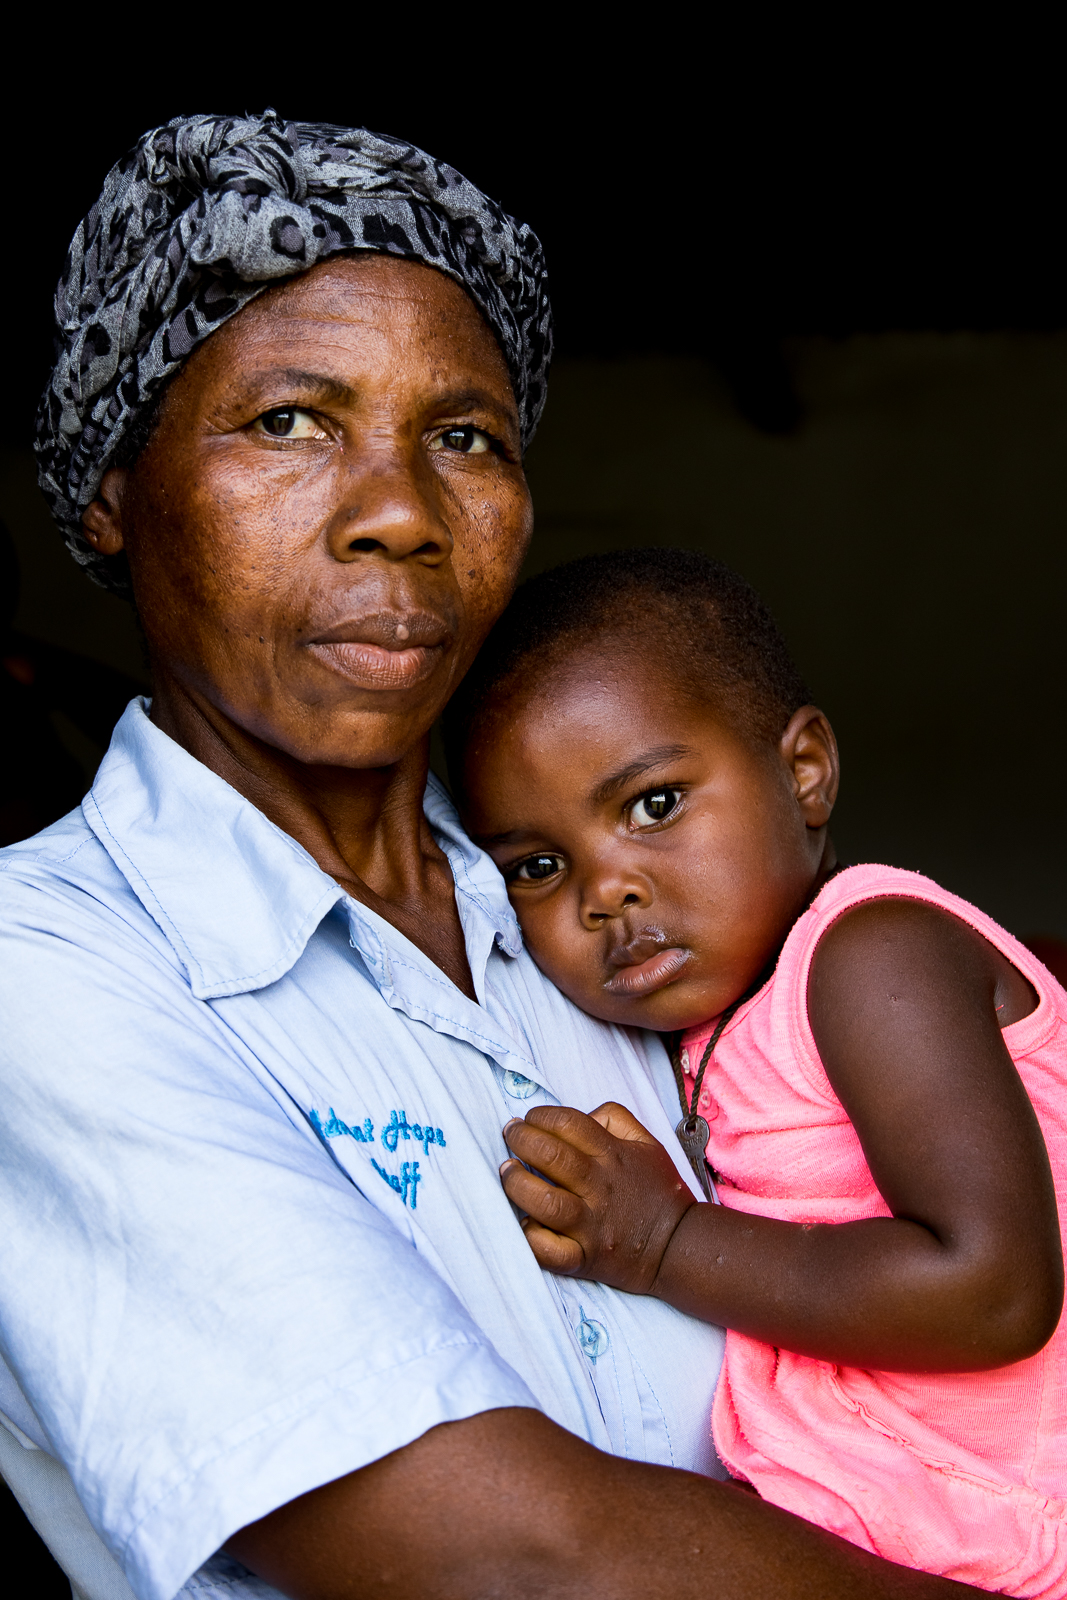 Caregiver and Child, South Africa